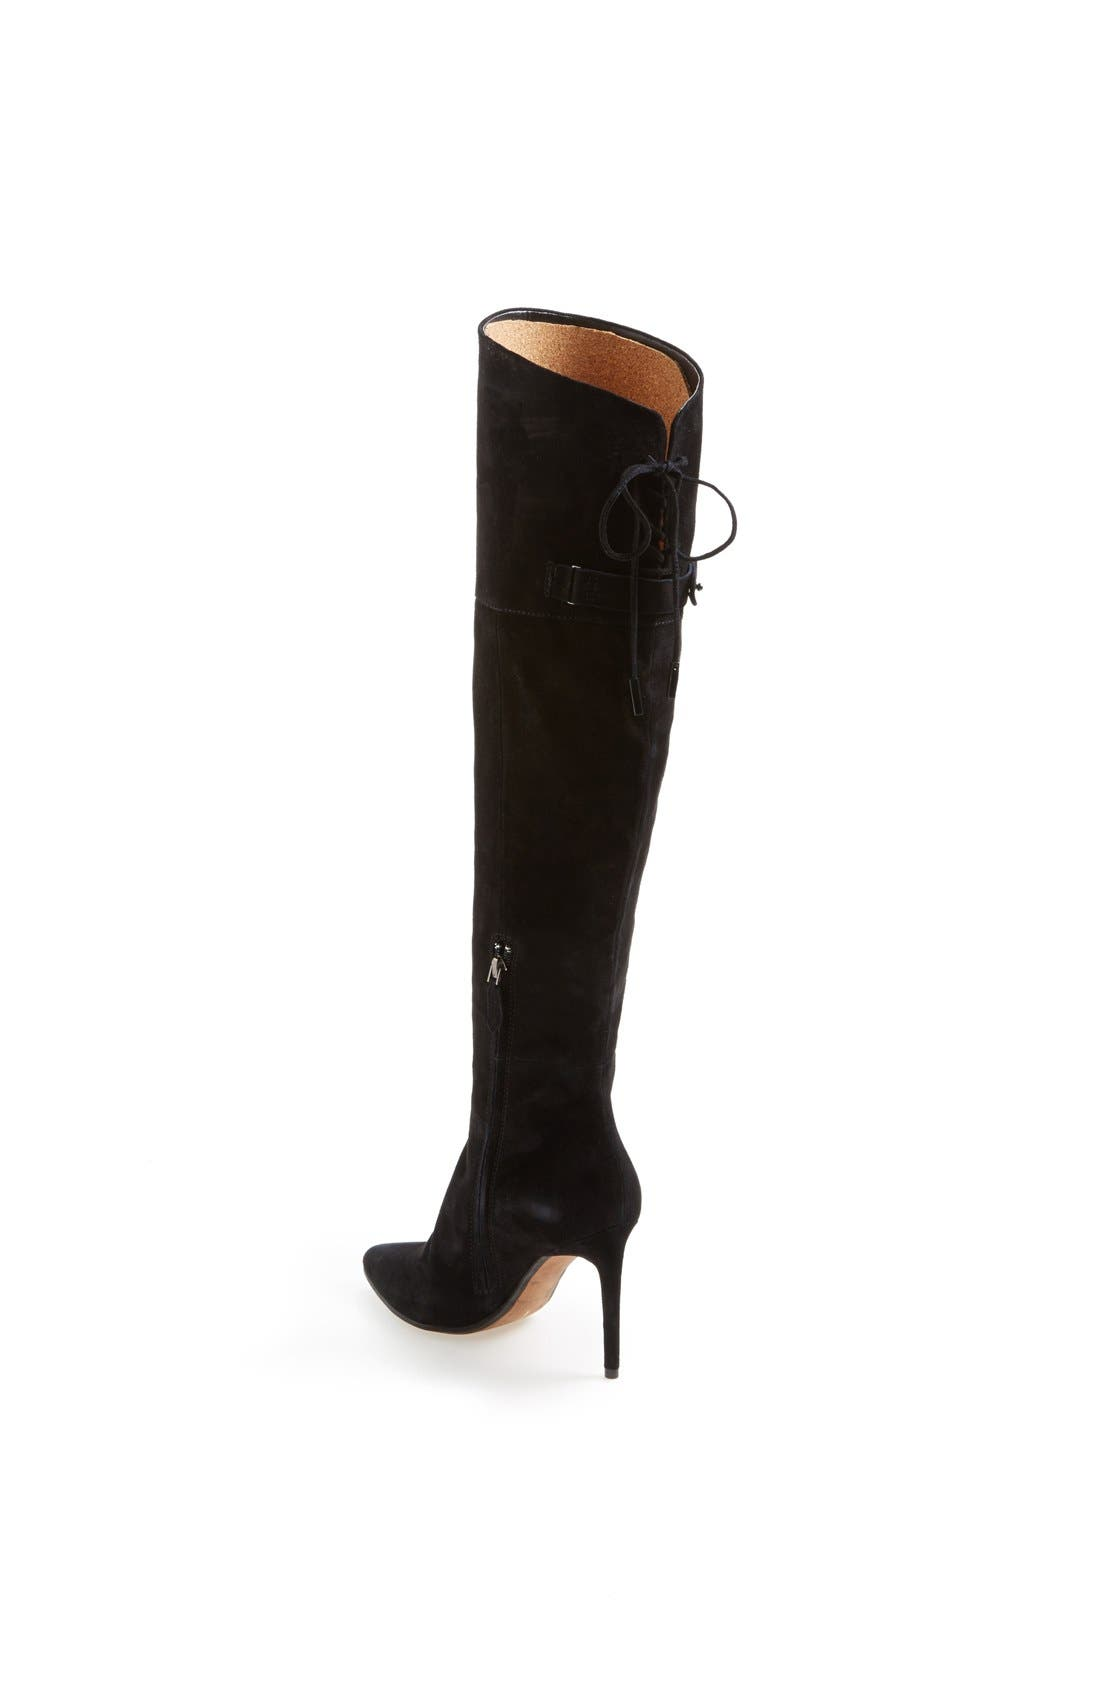 DOLCE VITA, 'Inara' Over the Knee Pointy Toe Suede Boot, Alternate thumbnail 5, color, 001